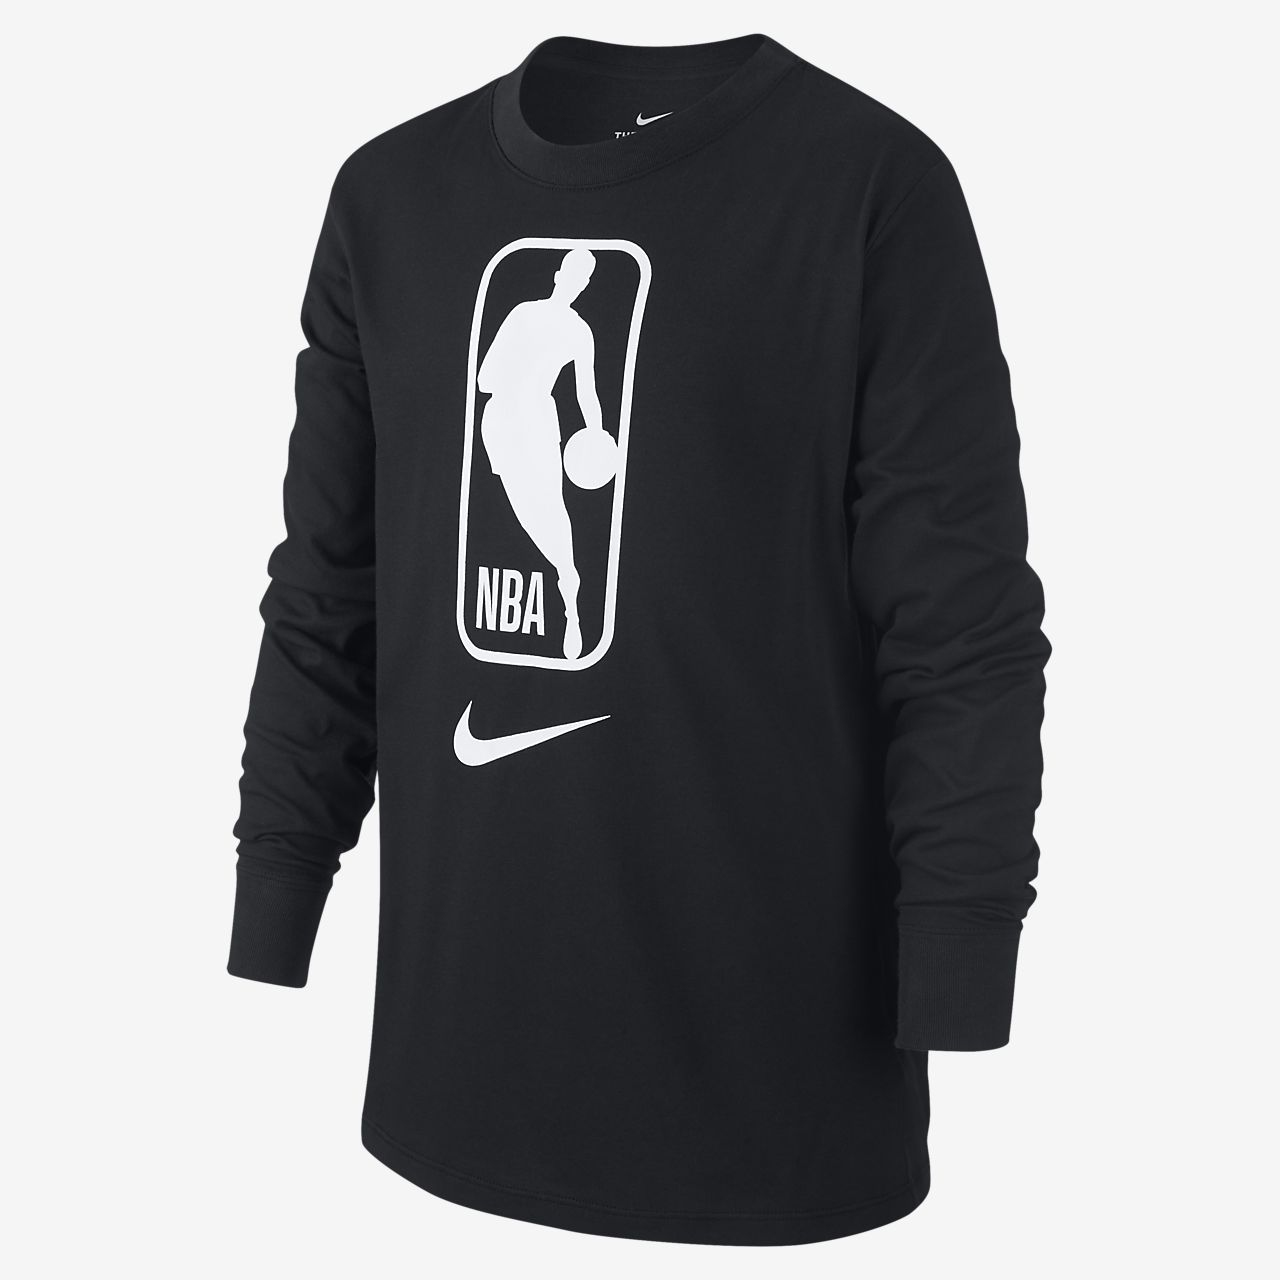 Nike Dri-FIT NBA-kindershirt met lange mouwen